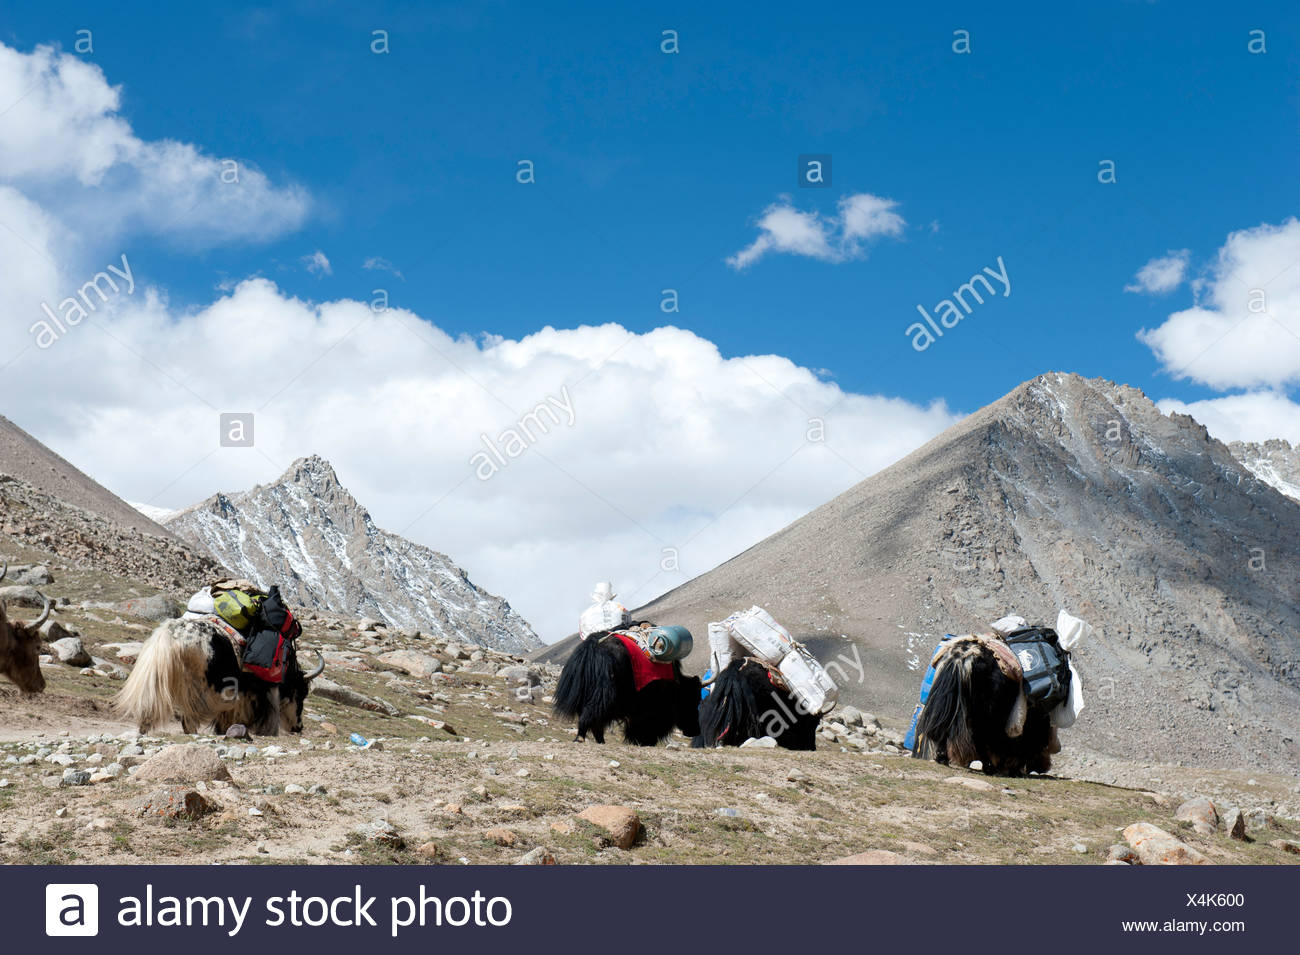 Tibetan Buddhism, waterfall, packed yak (Bos mutus) in the mountains, pilgrimage route to the sacred Mount Kailash - Stock Image